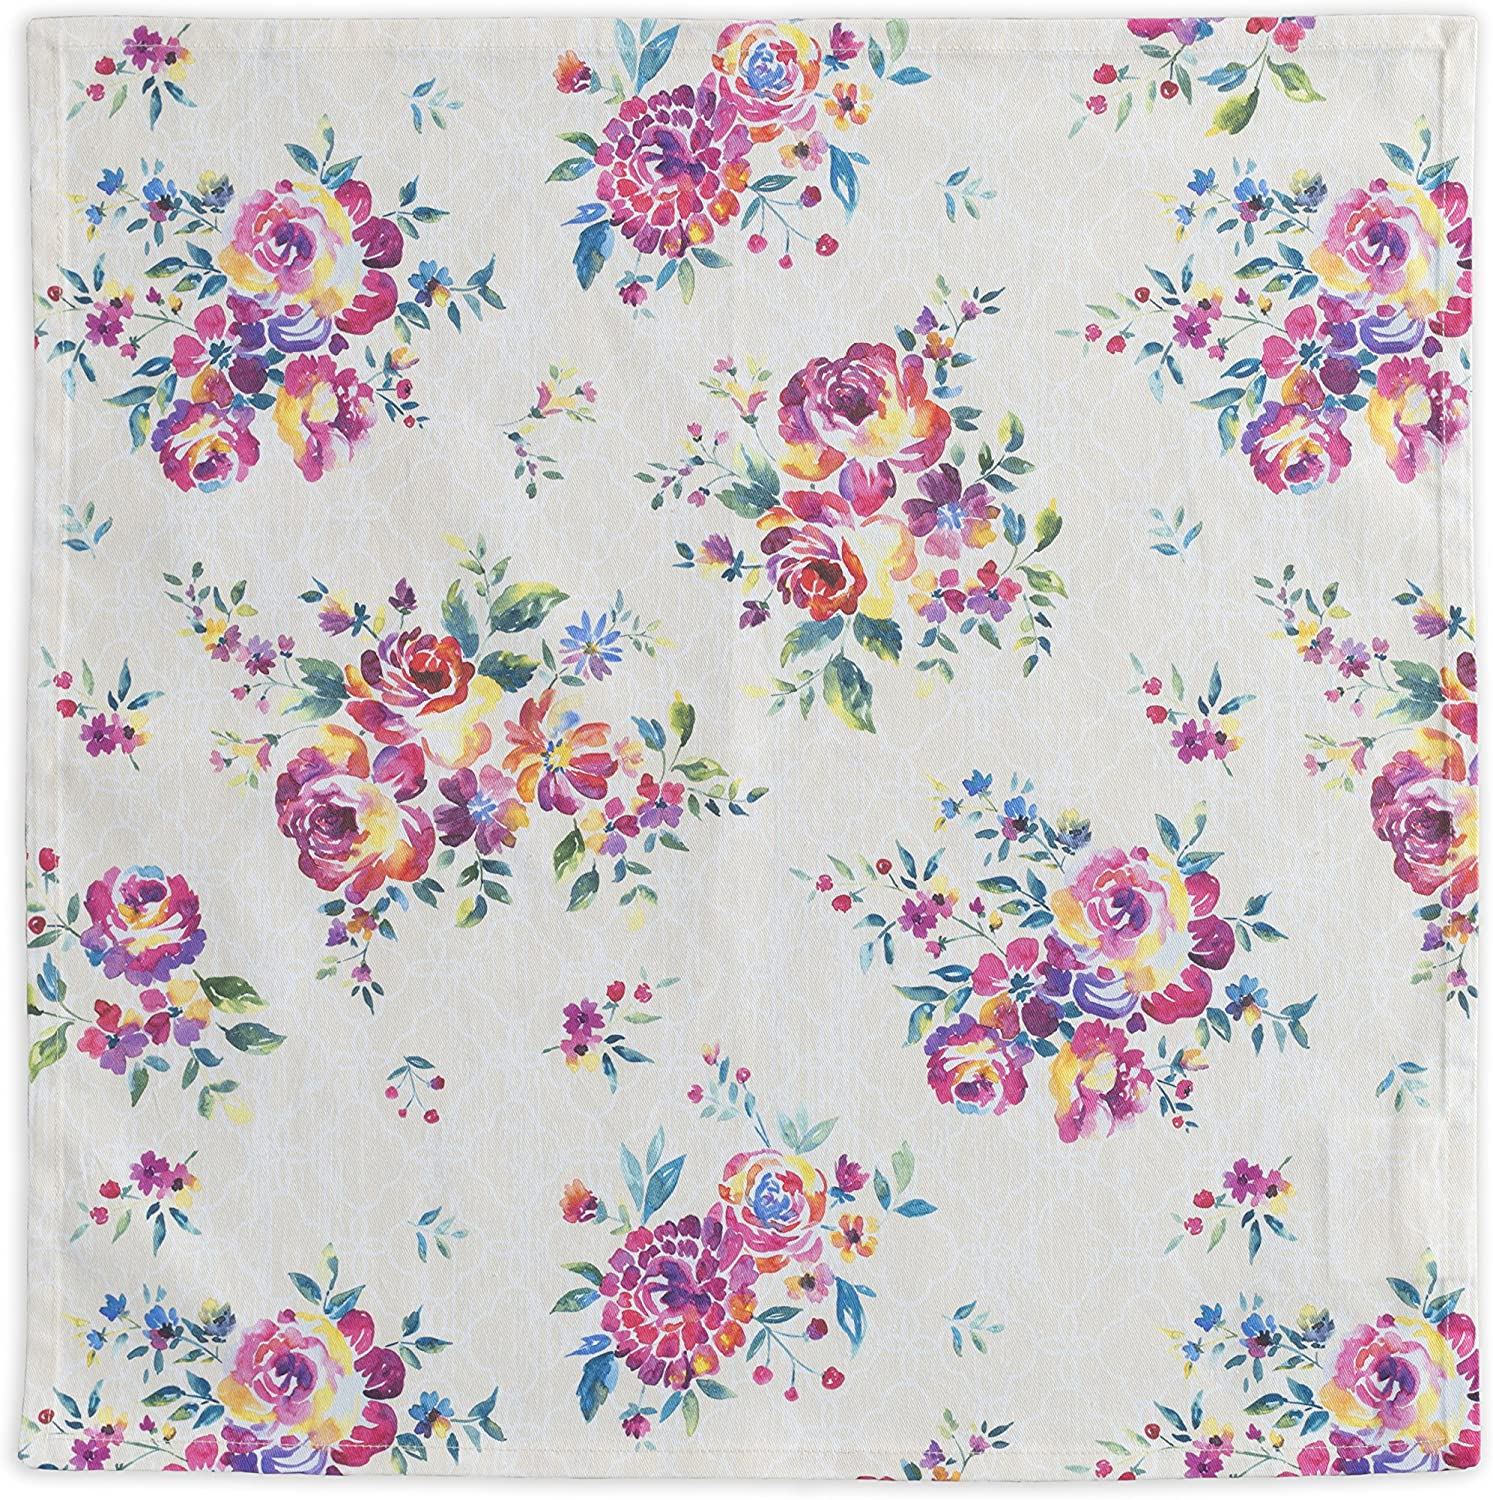 Maison d' Hermine Rose Garden 100% Cotton Soft and Comfortable Set of 4 Napkins Perfect for Family Dinners   Weddings   Cocktail   Kitchen   Spring/Summer (20 Inch by 20 Inch).